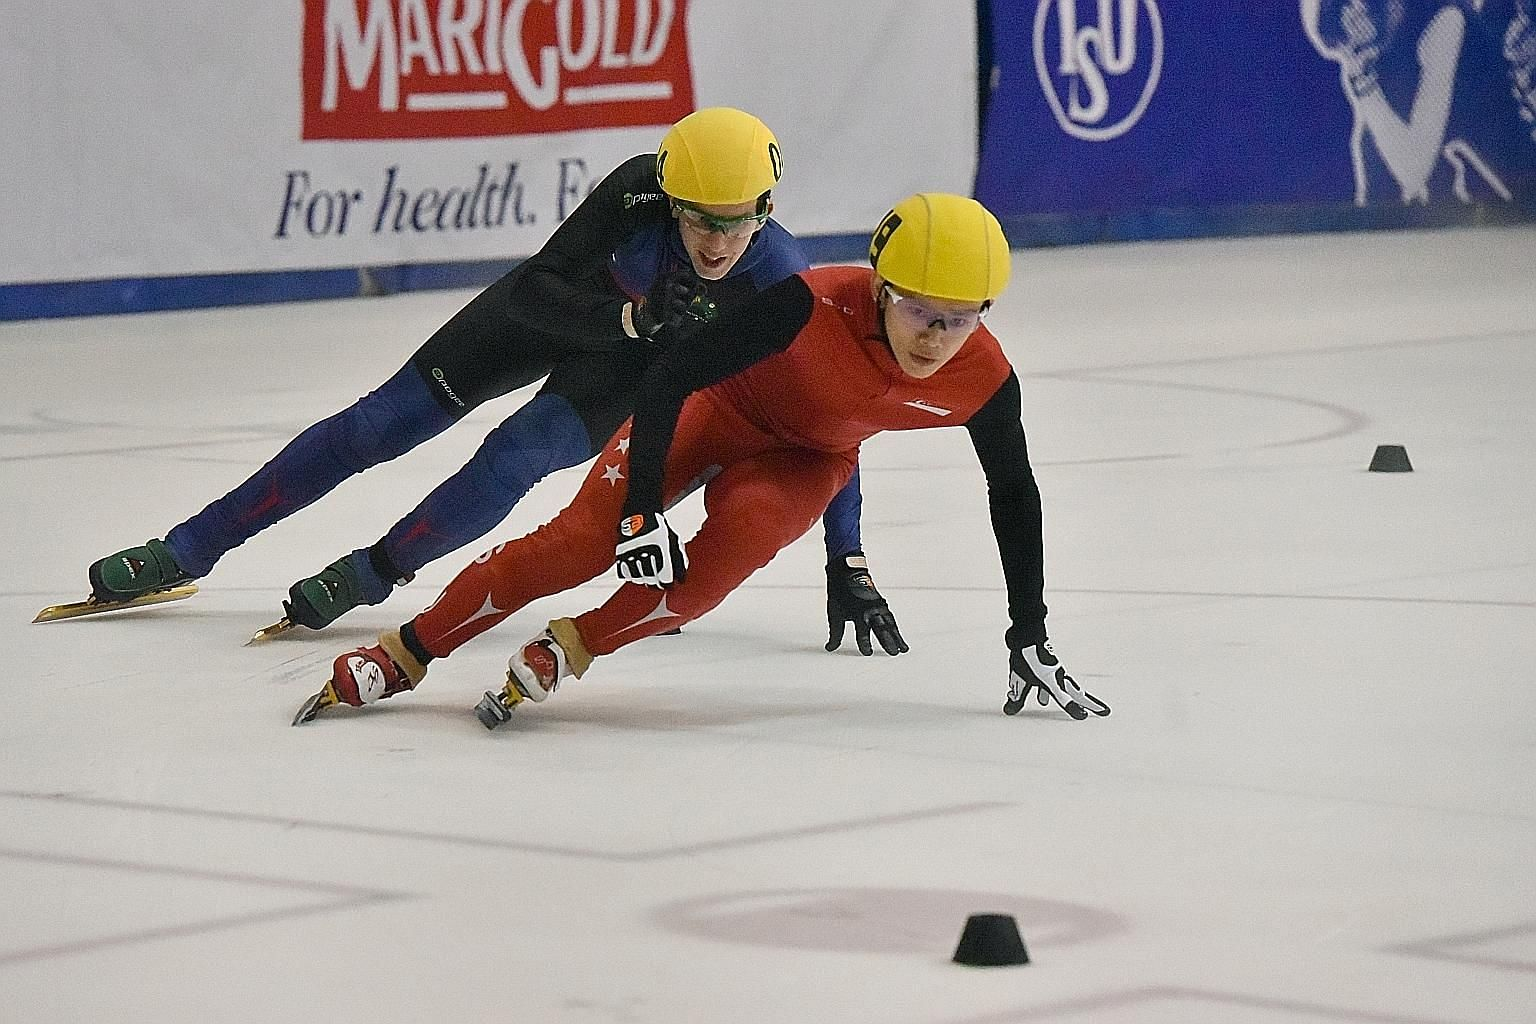 Singapore's Lucas Ng staying ahead of Australian Luke Cullen to win the SEA Open Short Track Trophy men's 500m, after the positions were reversed in the 1,500m.